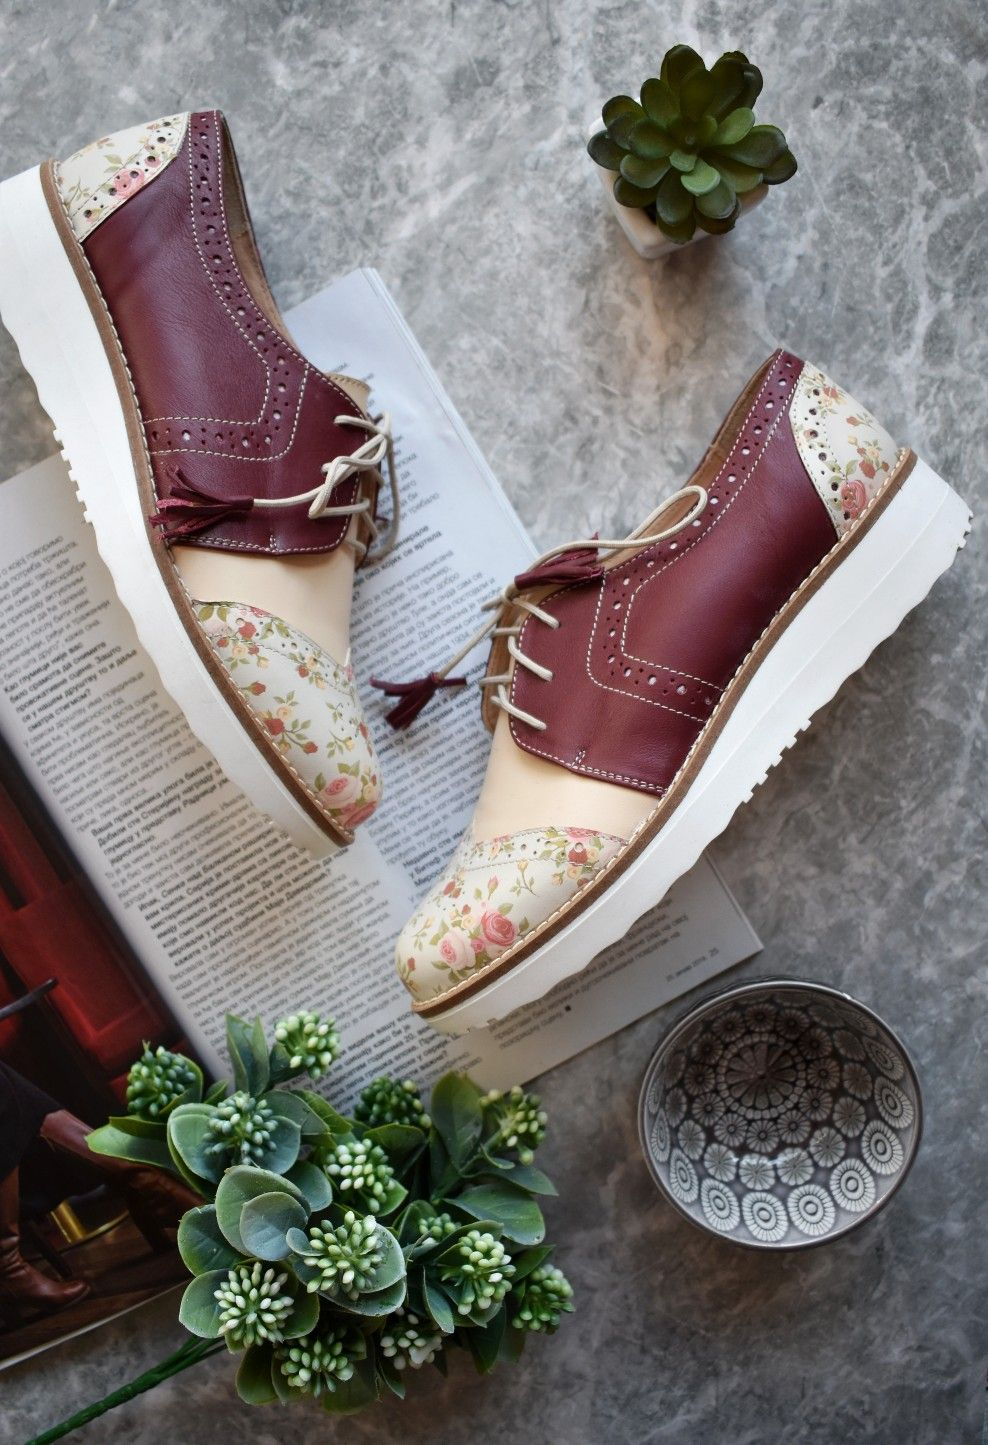 Pin on Shoe-tique.